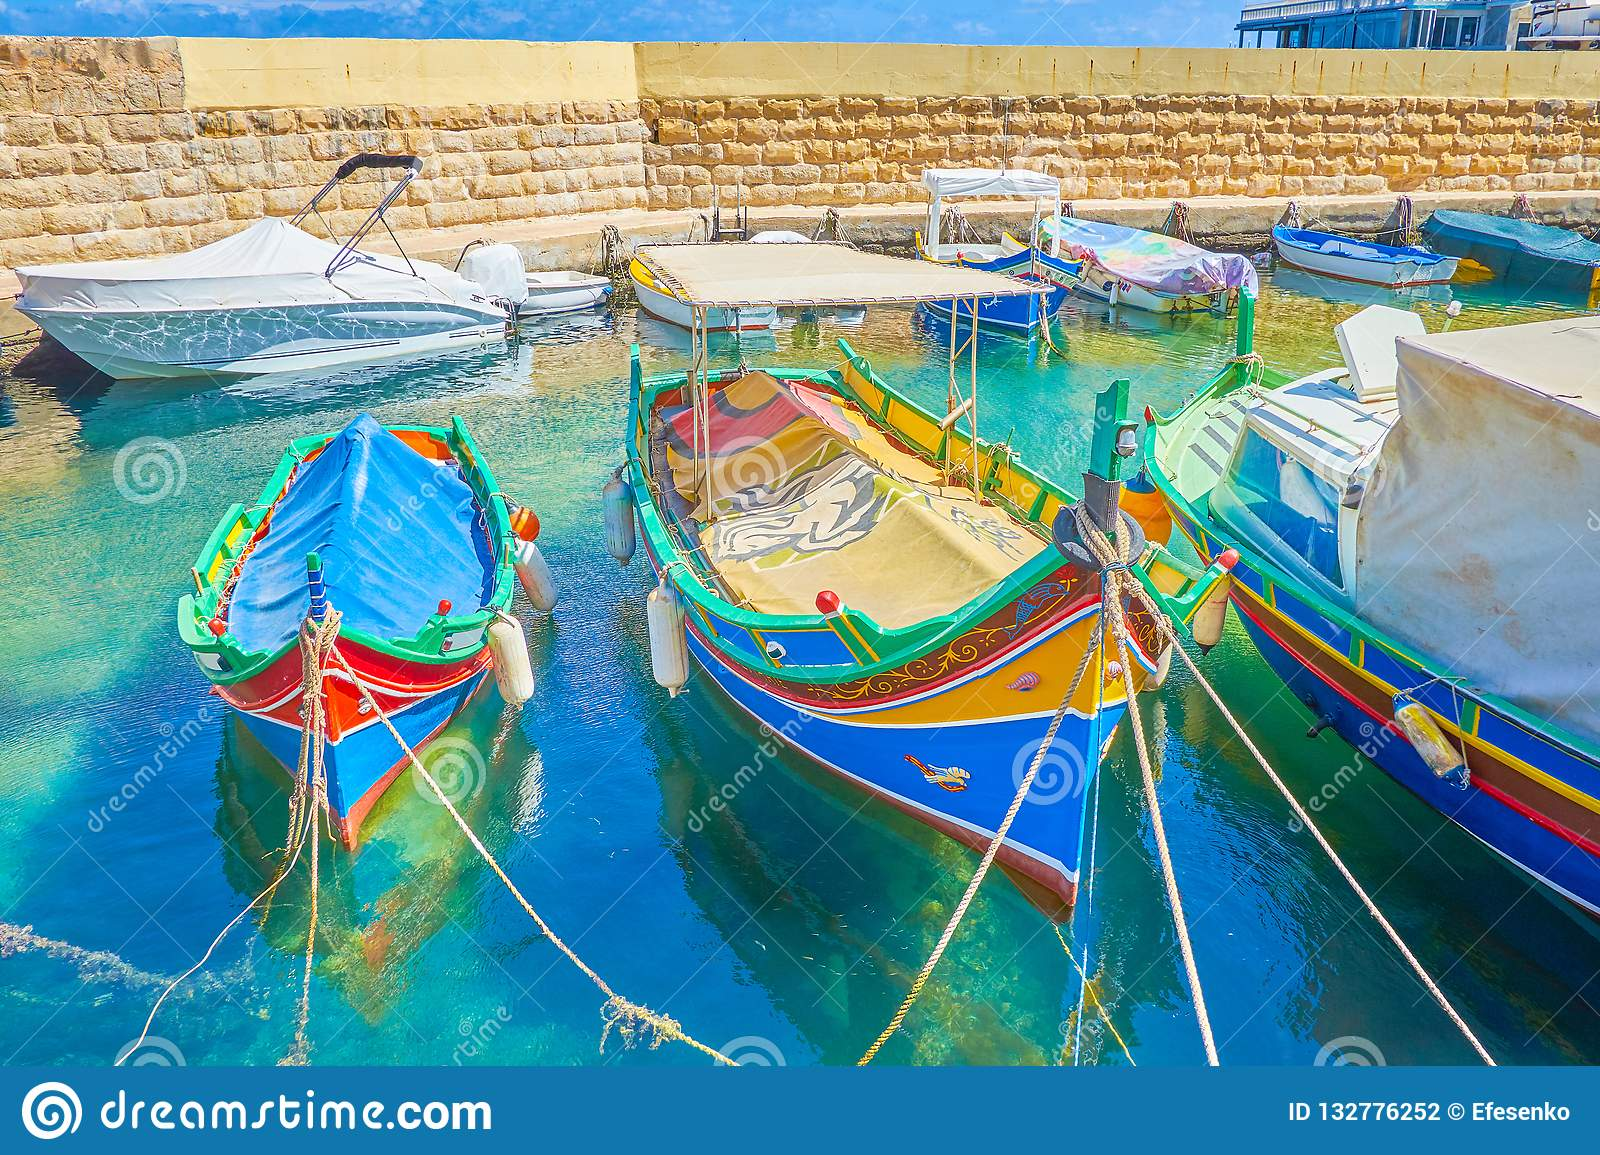 The Maltese colorful wooden luzzu boats, Bugibba